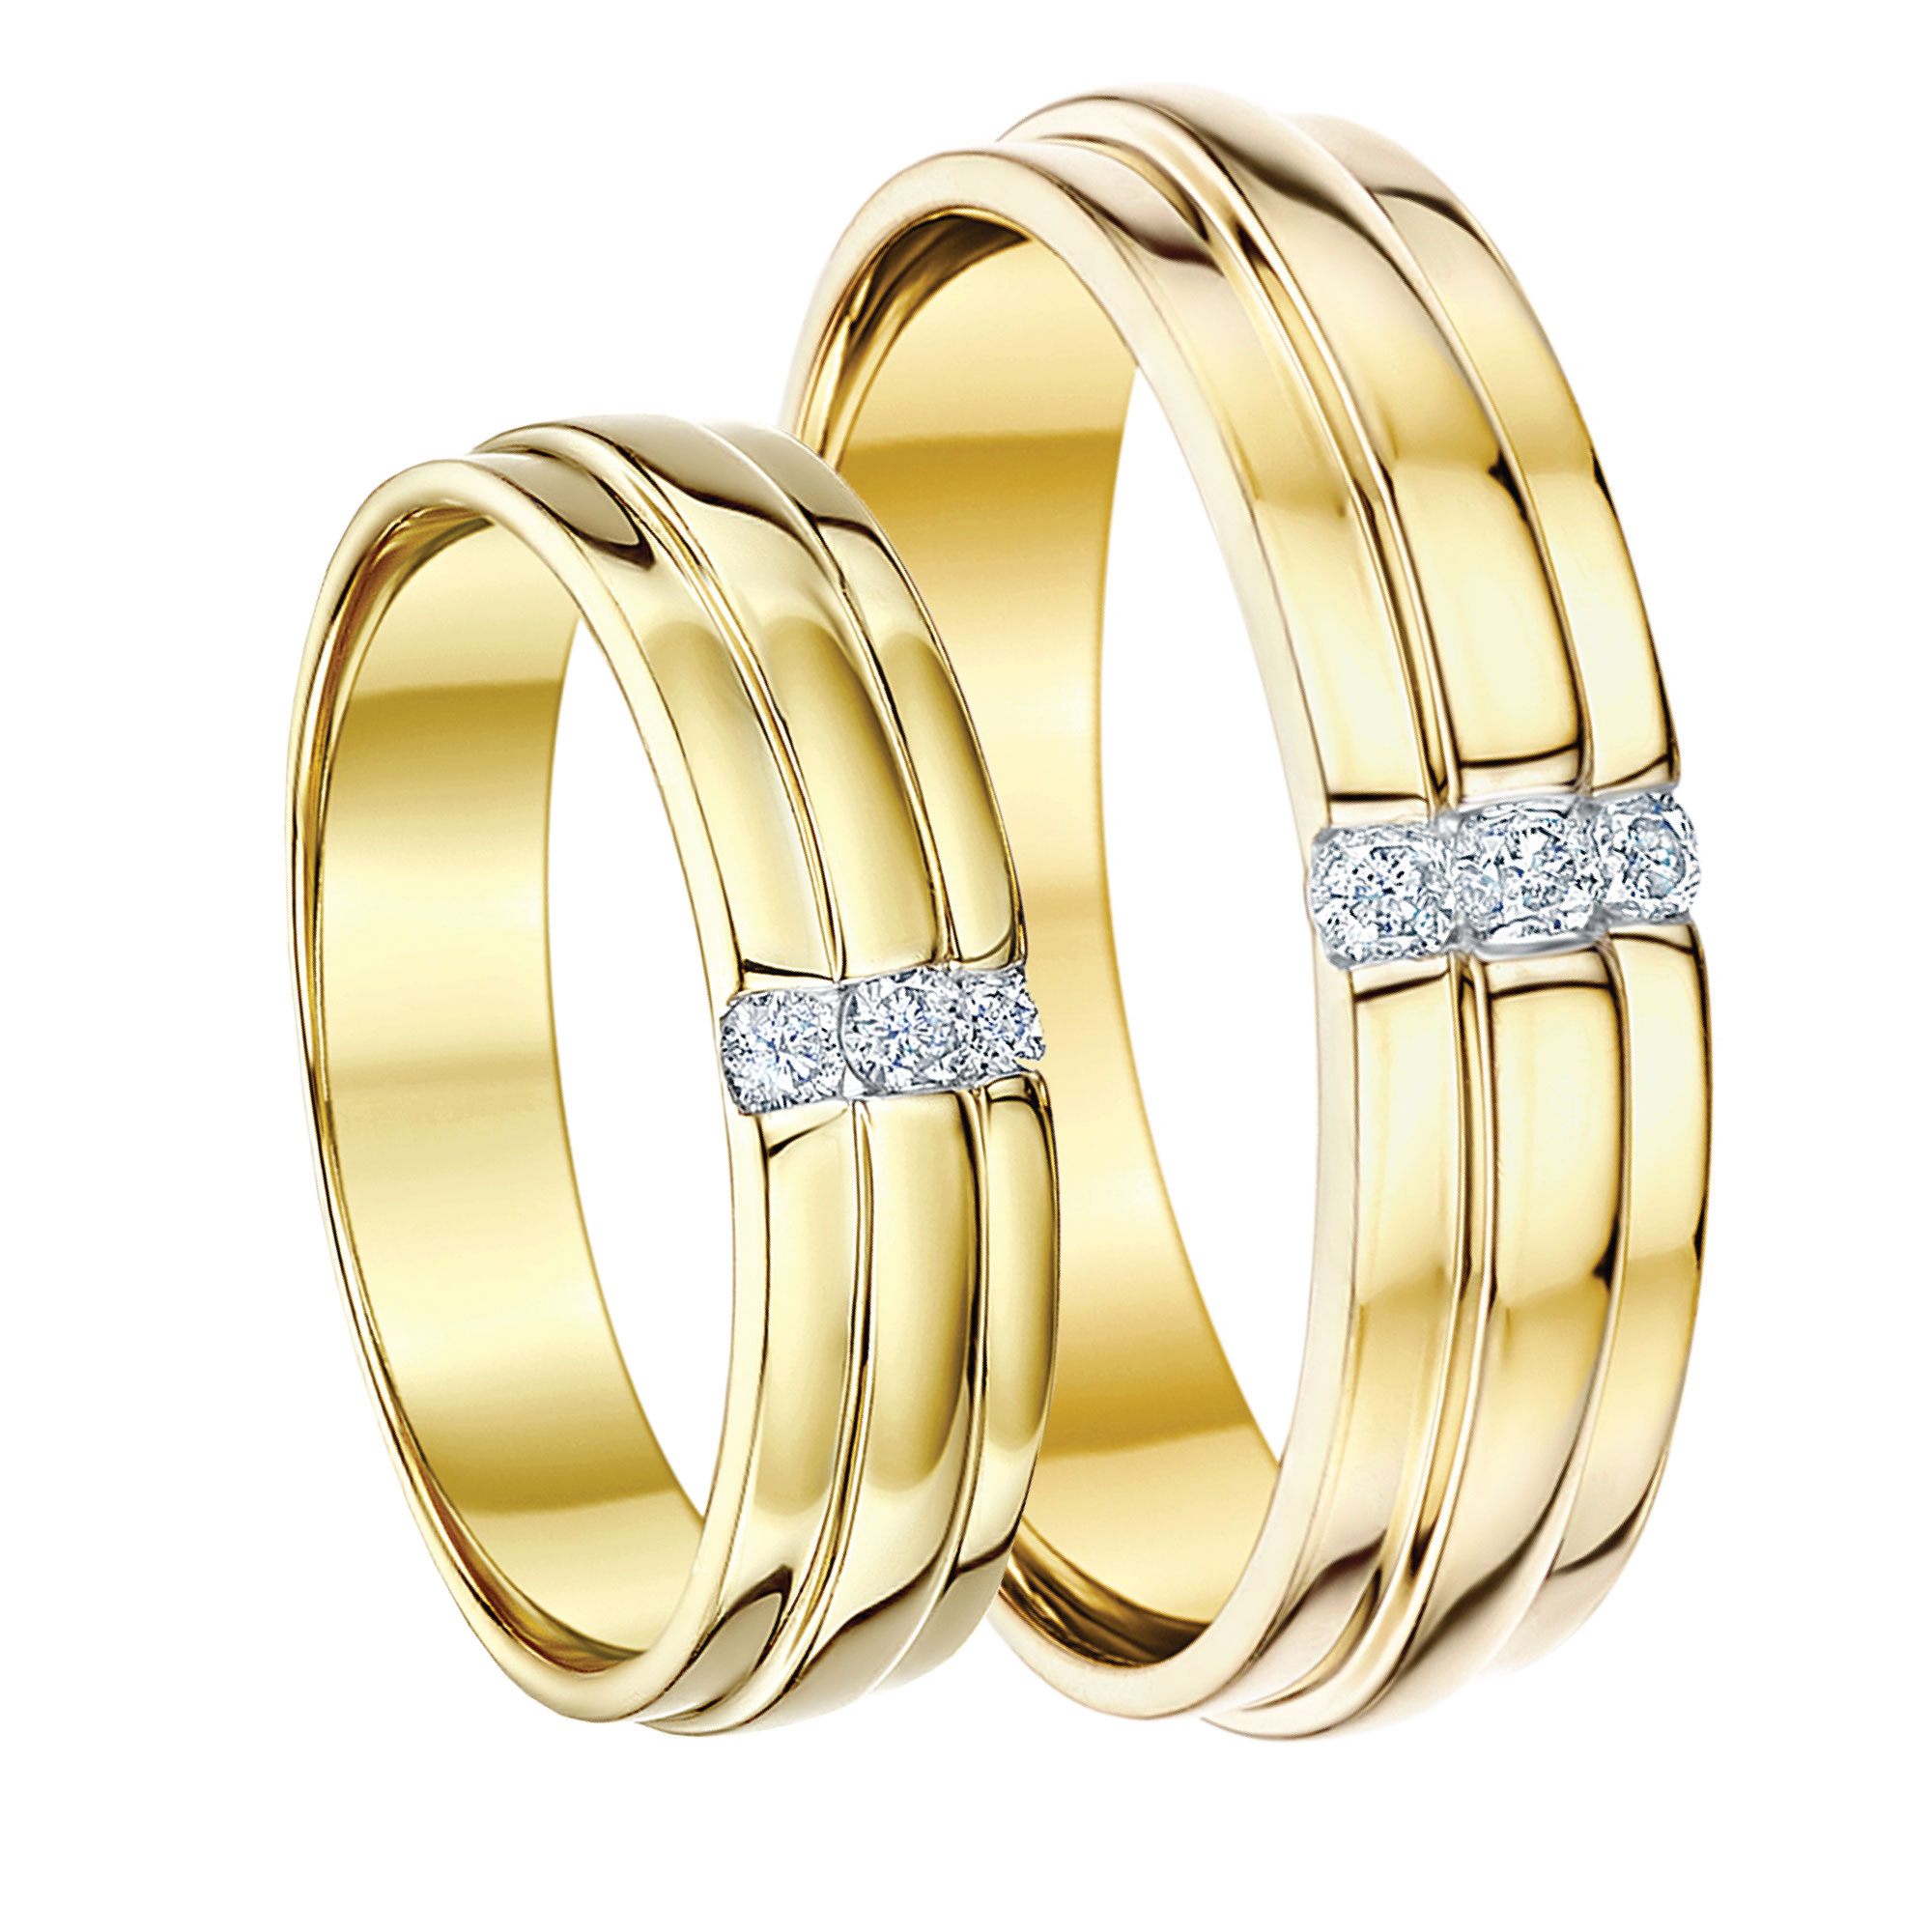 gauche eternity rive band jewelry img diamond product bands and chic yellow gold wedding